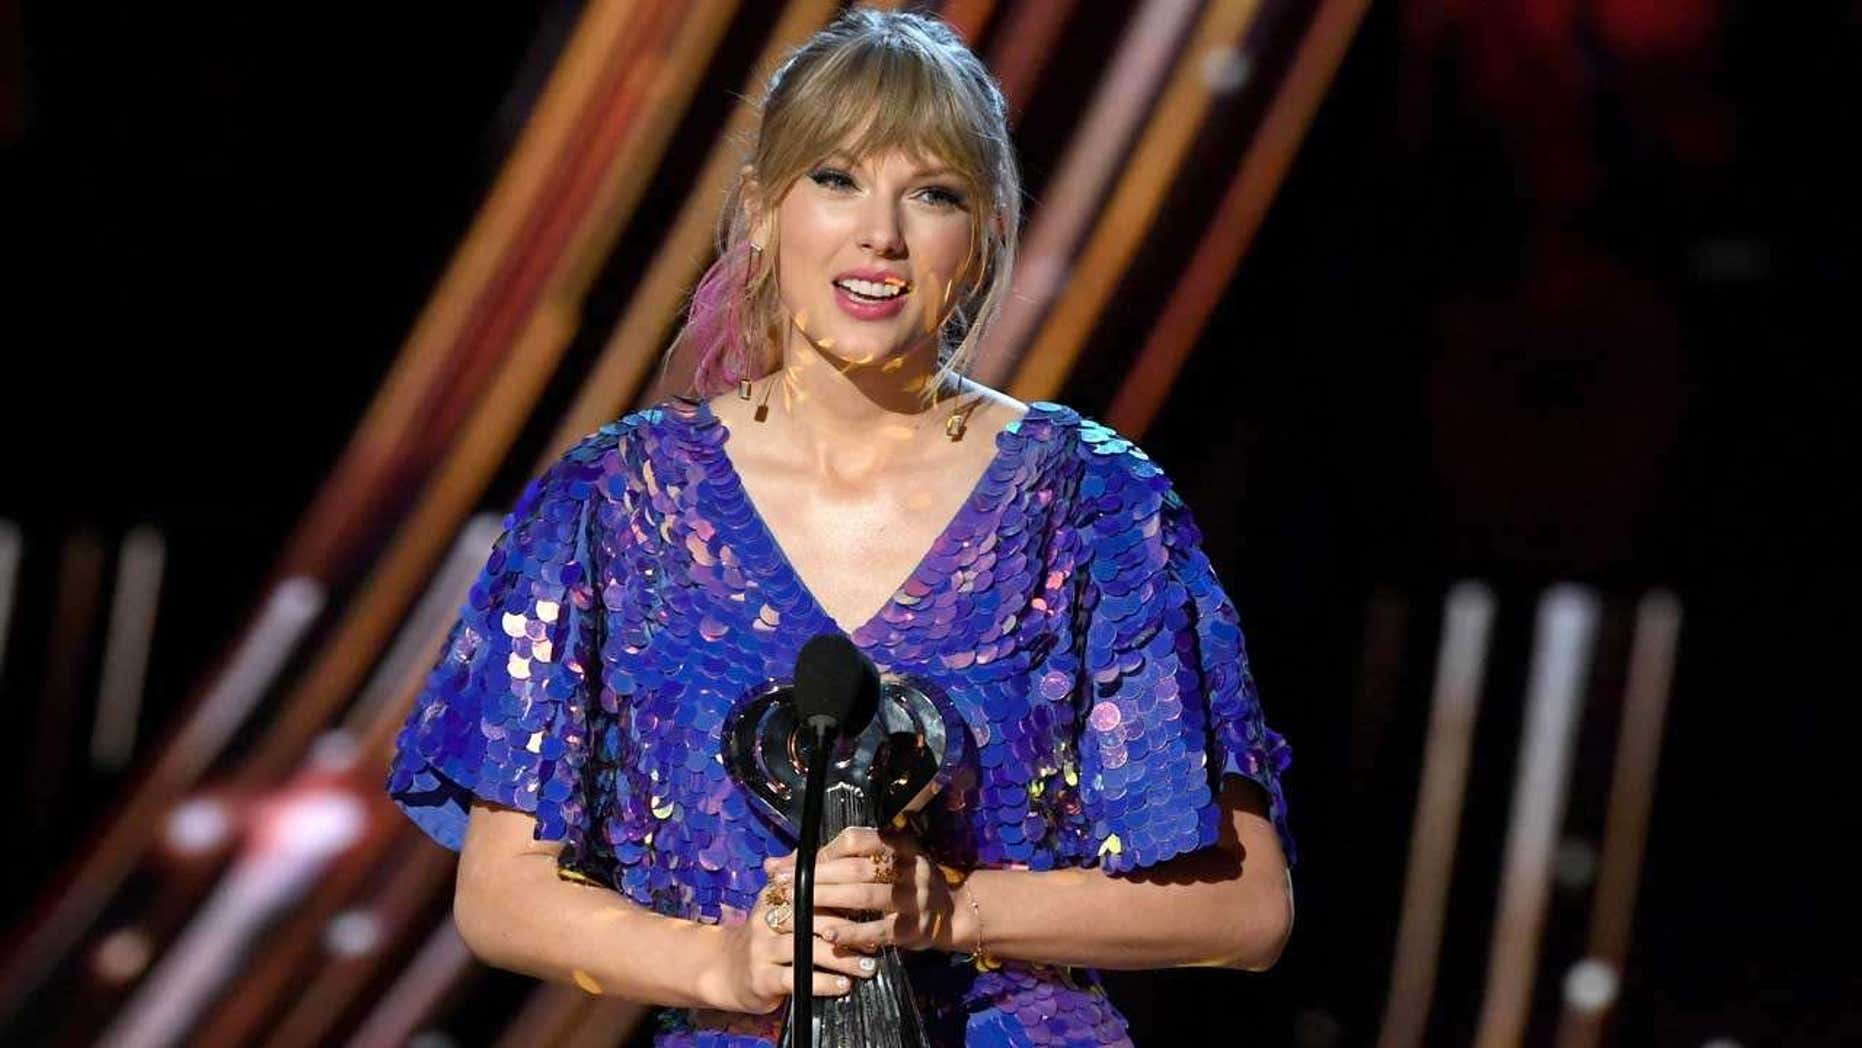 Taylor Swift accepts the Tour of the Year honor at the 2019 iHeartRadio Music Awards.